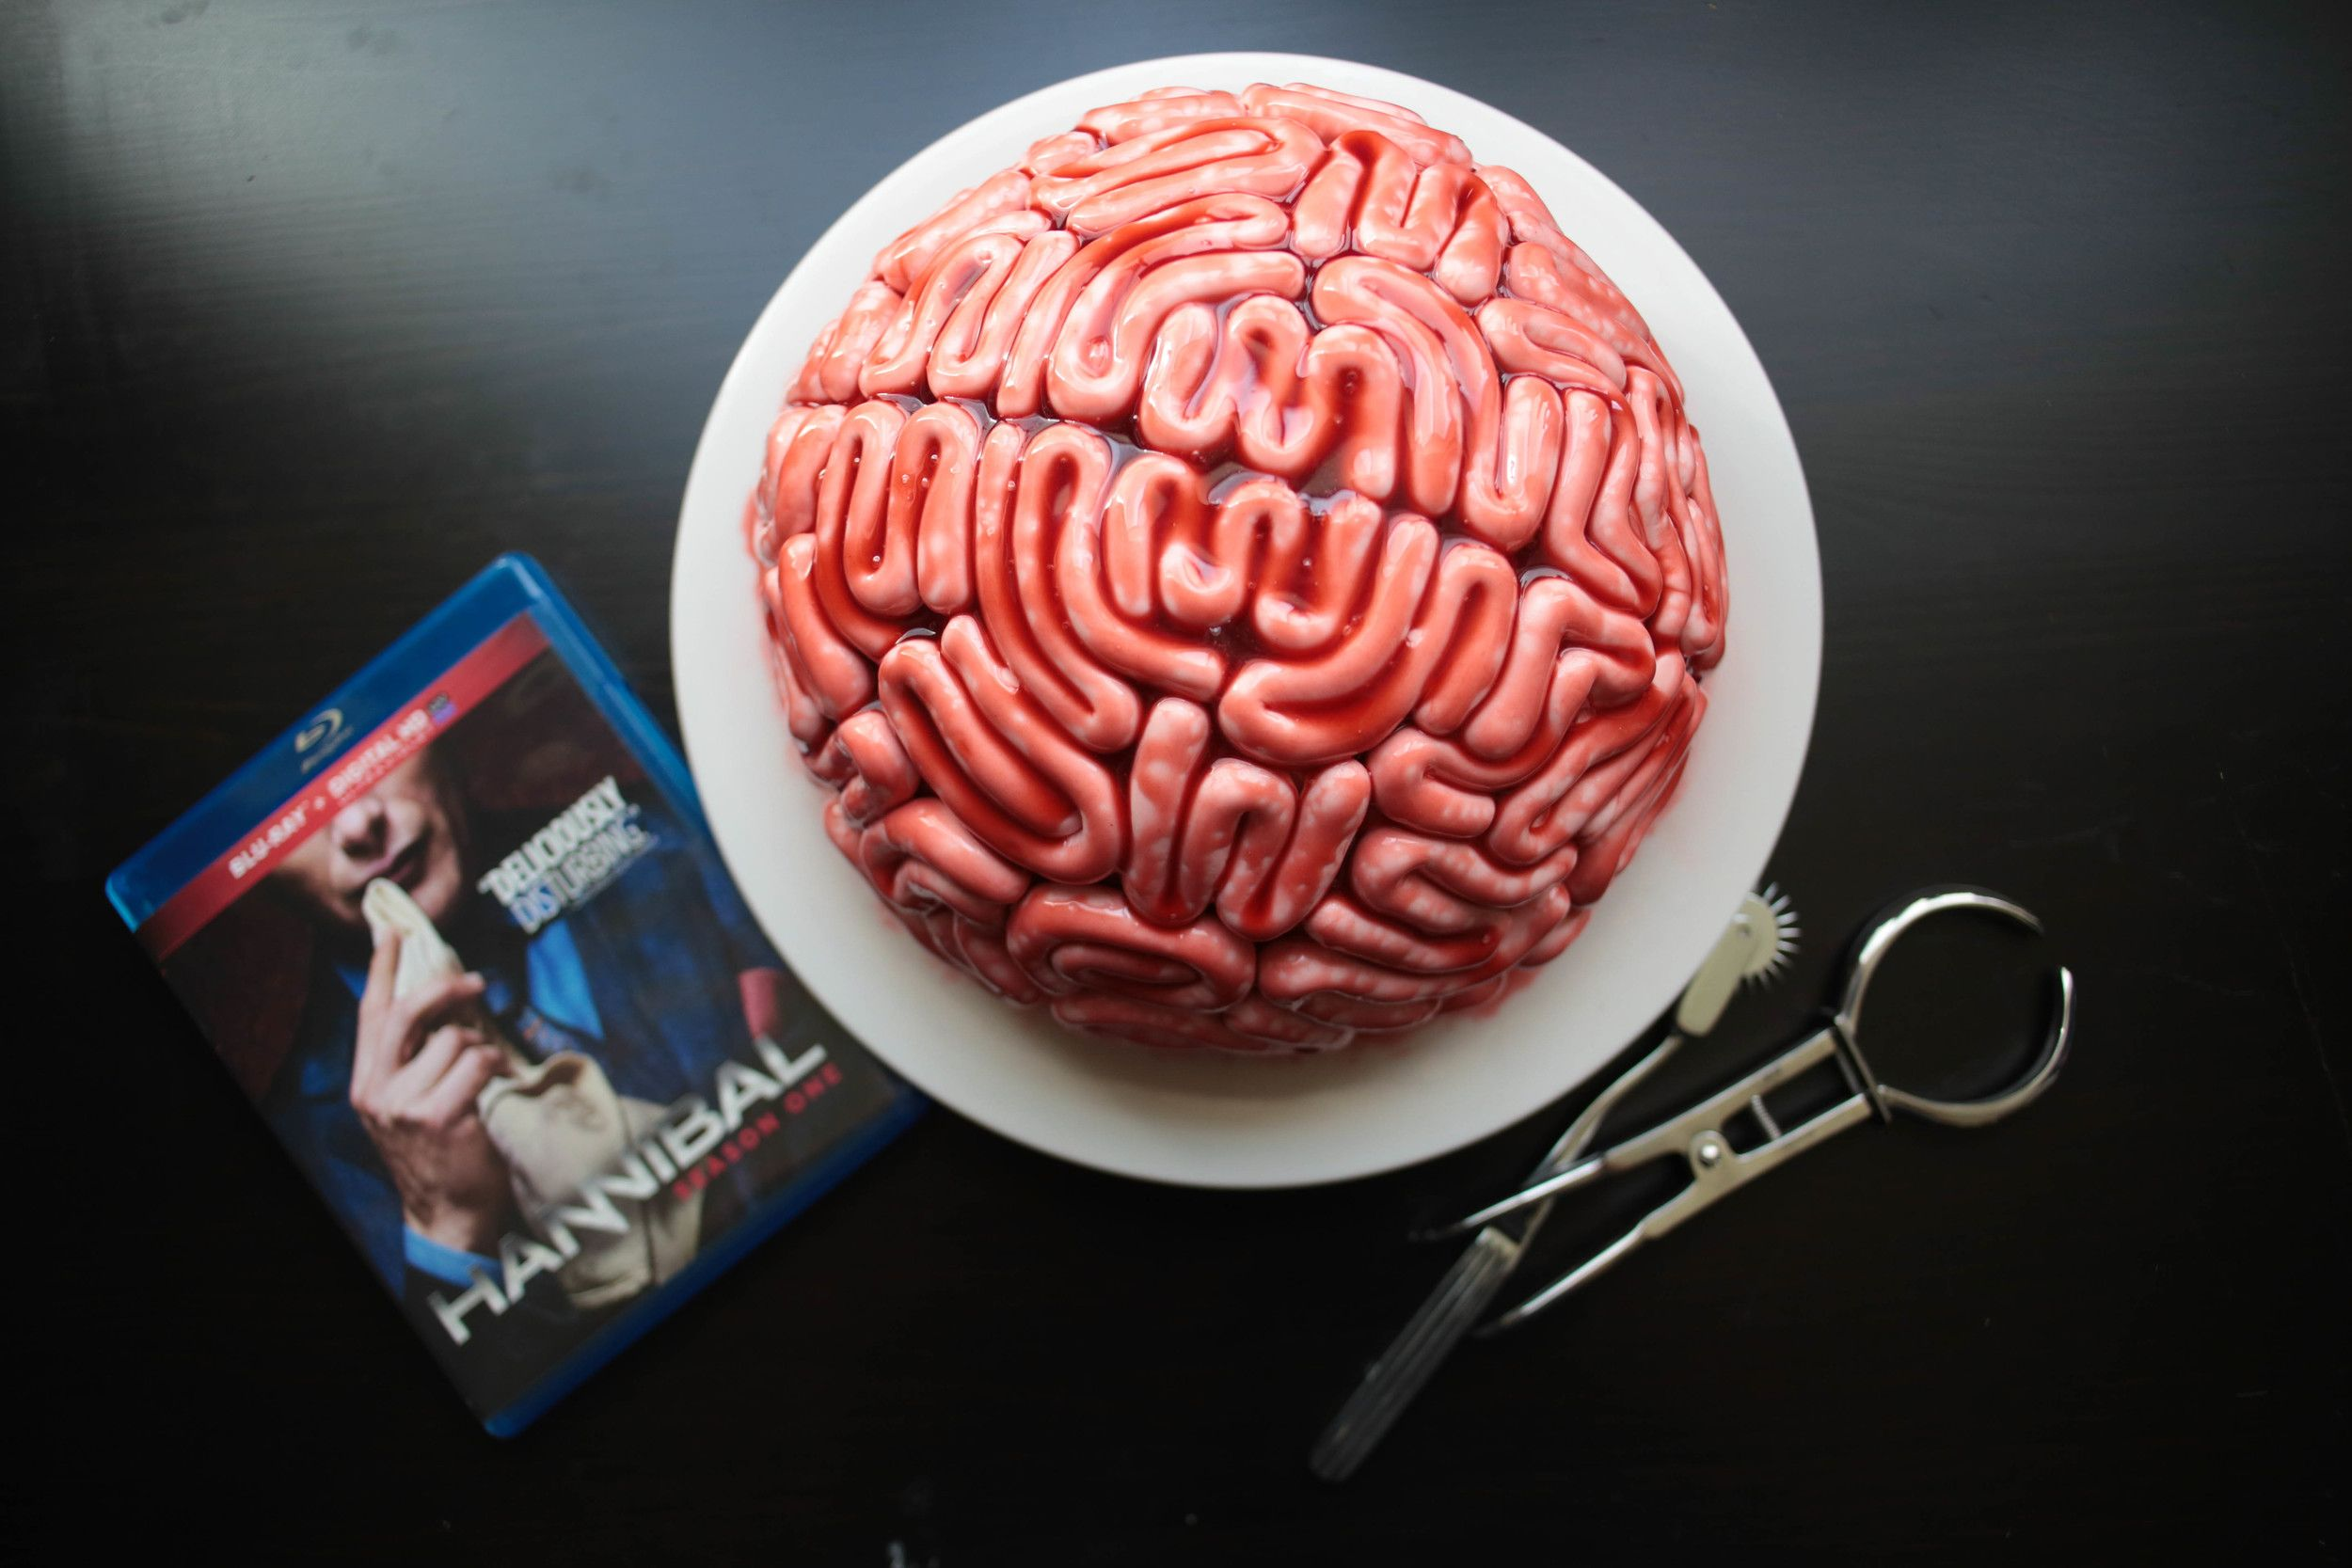 How To Hannibal Finale Brain Cake Sugared Nerd Brain Cake Easy Halloween Food Halloween Food For Party